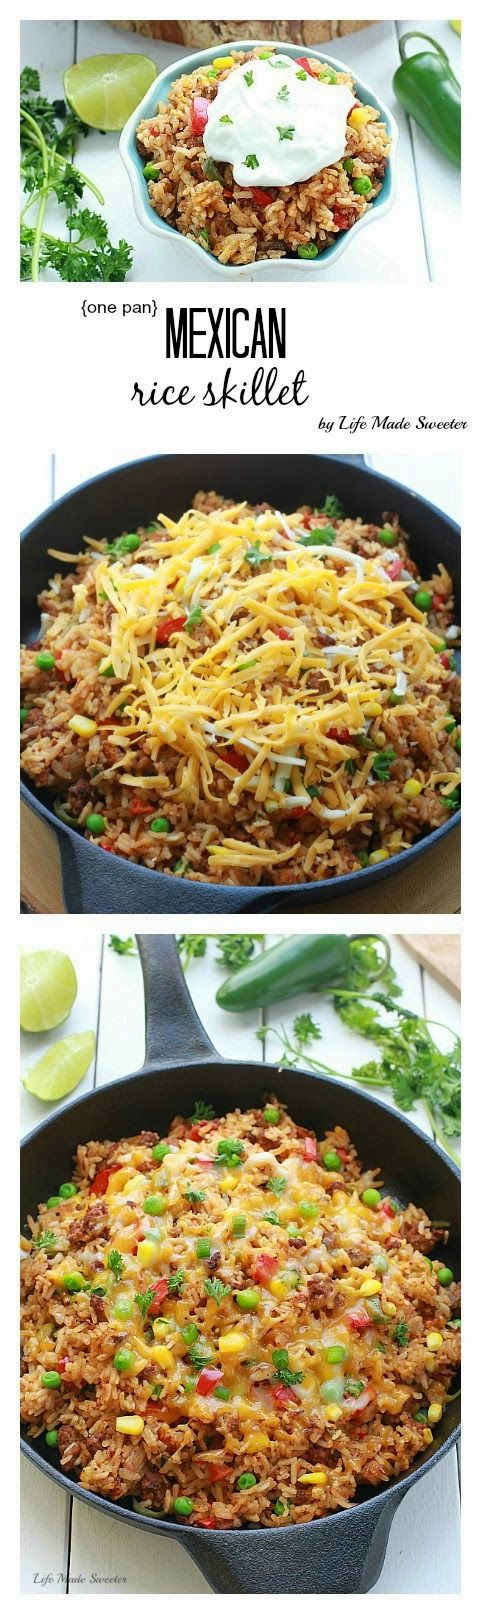 {ONE PAN} MEXICAN RICE SKILLET from Life made sweeter. Oh my Yum!